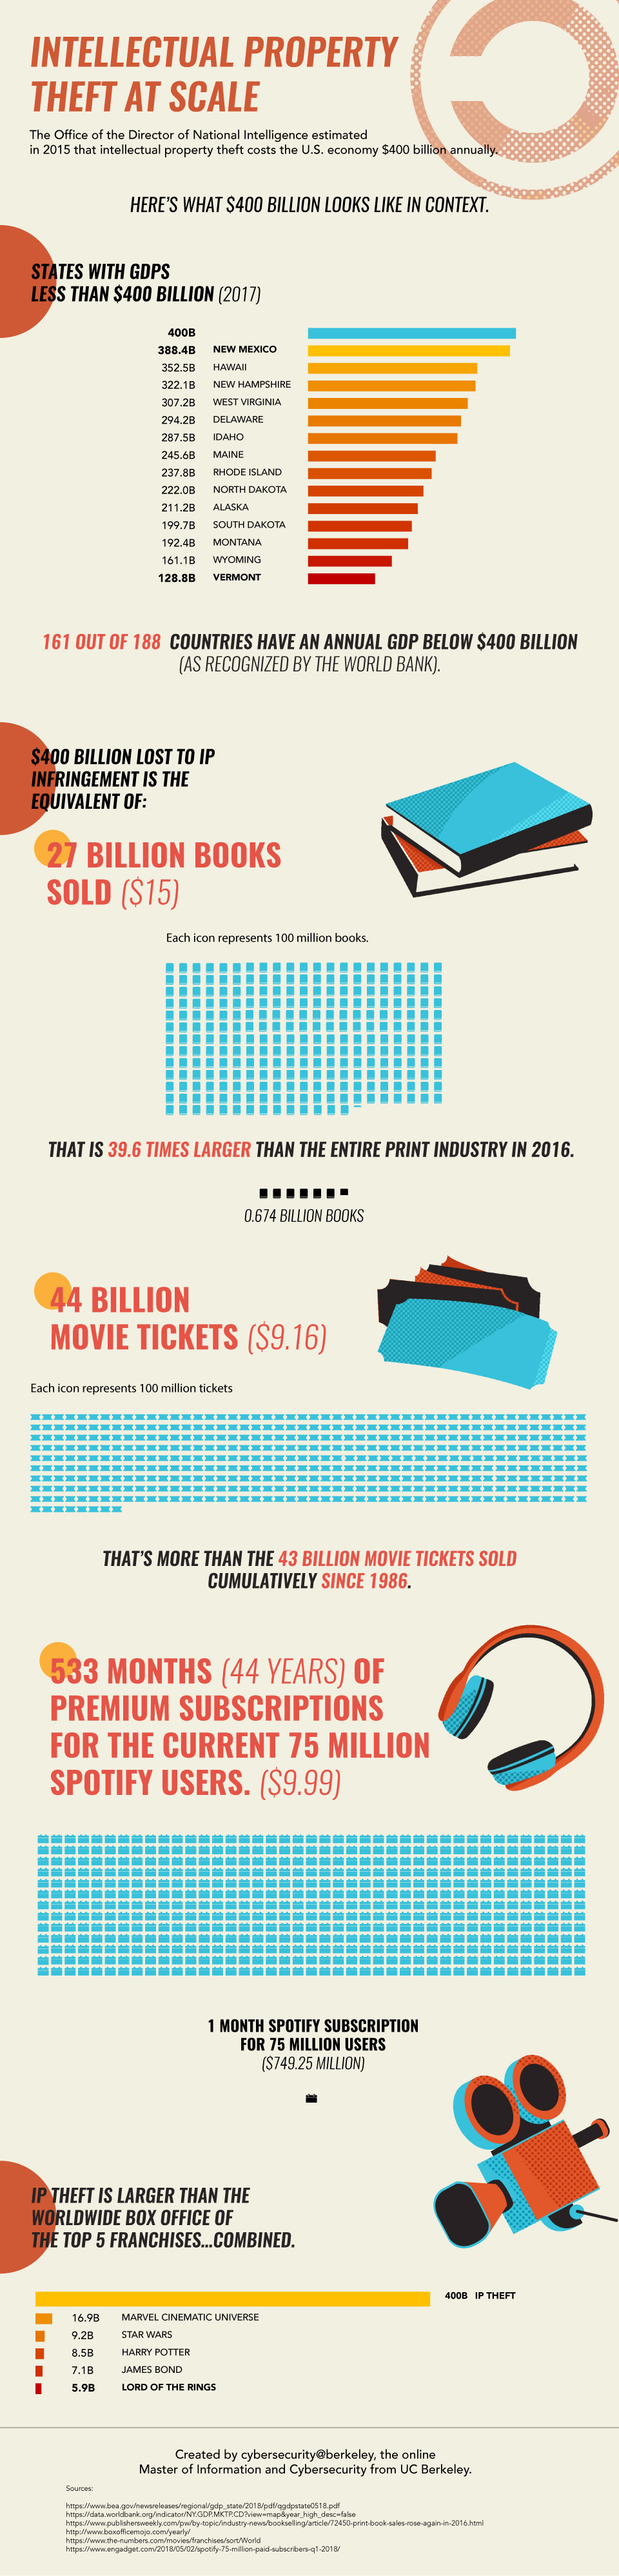 Intellectual Property Theft at Scale infographic